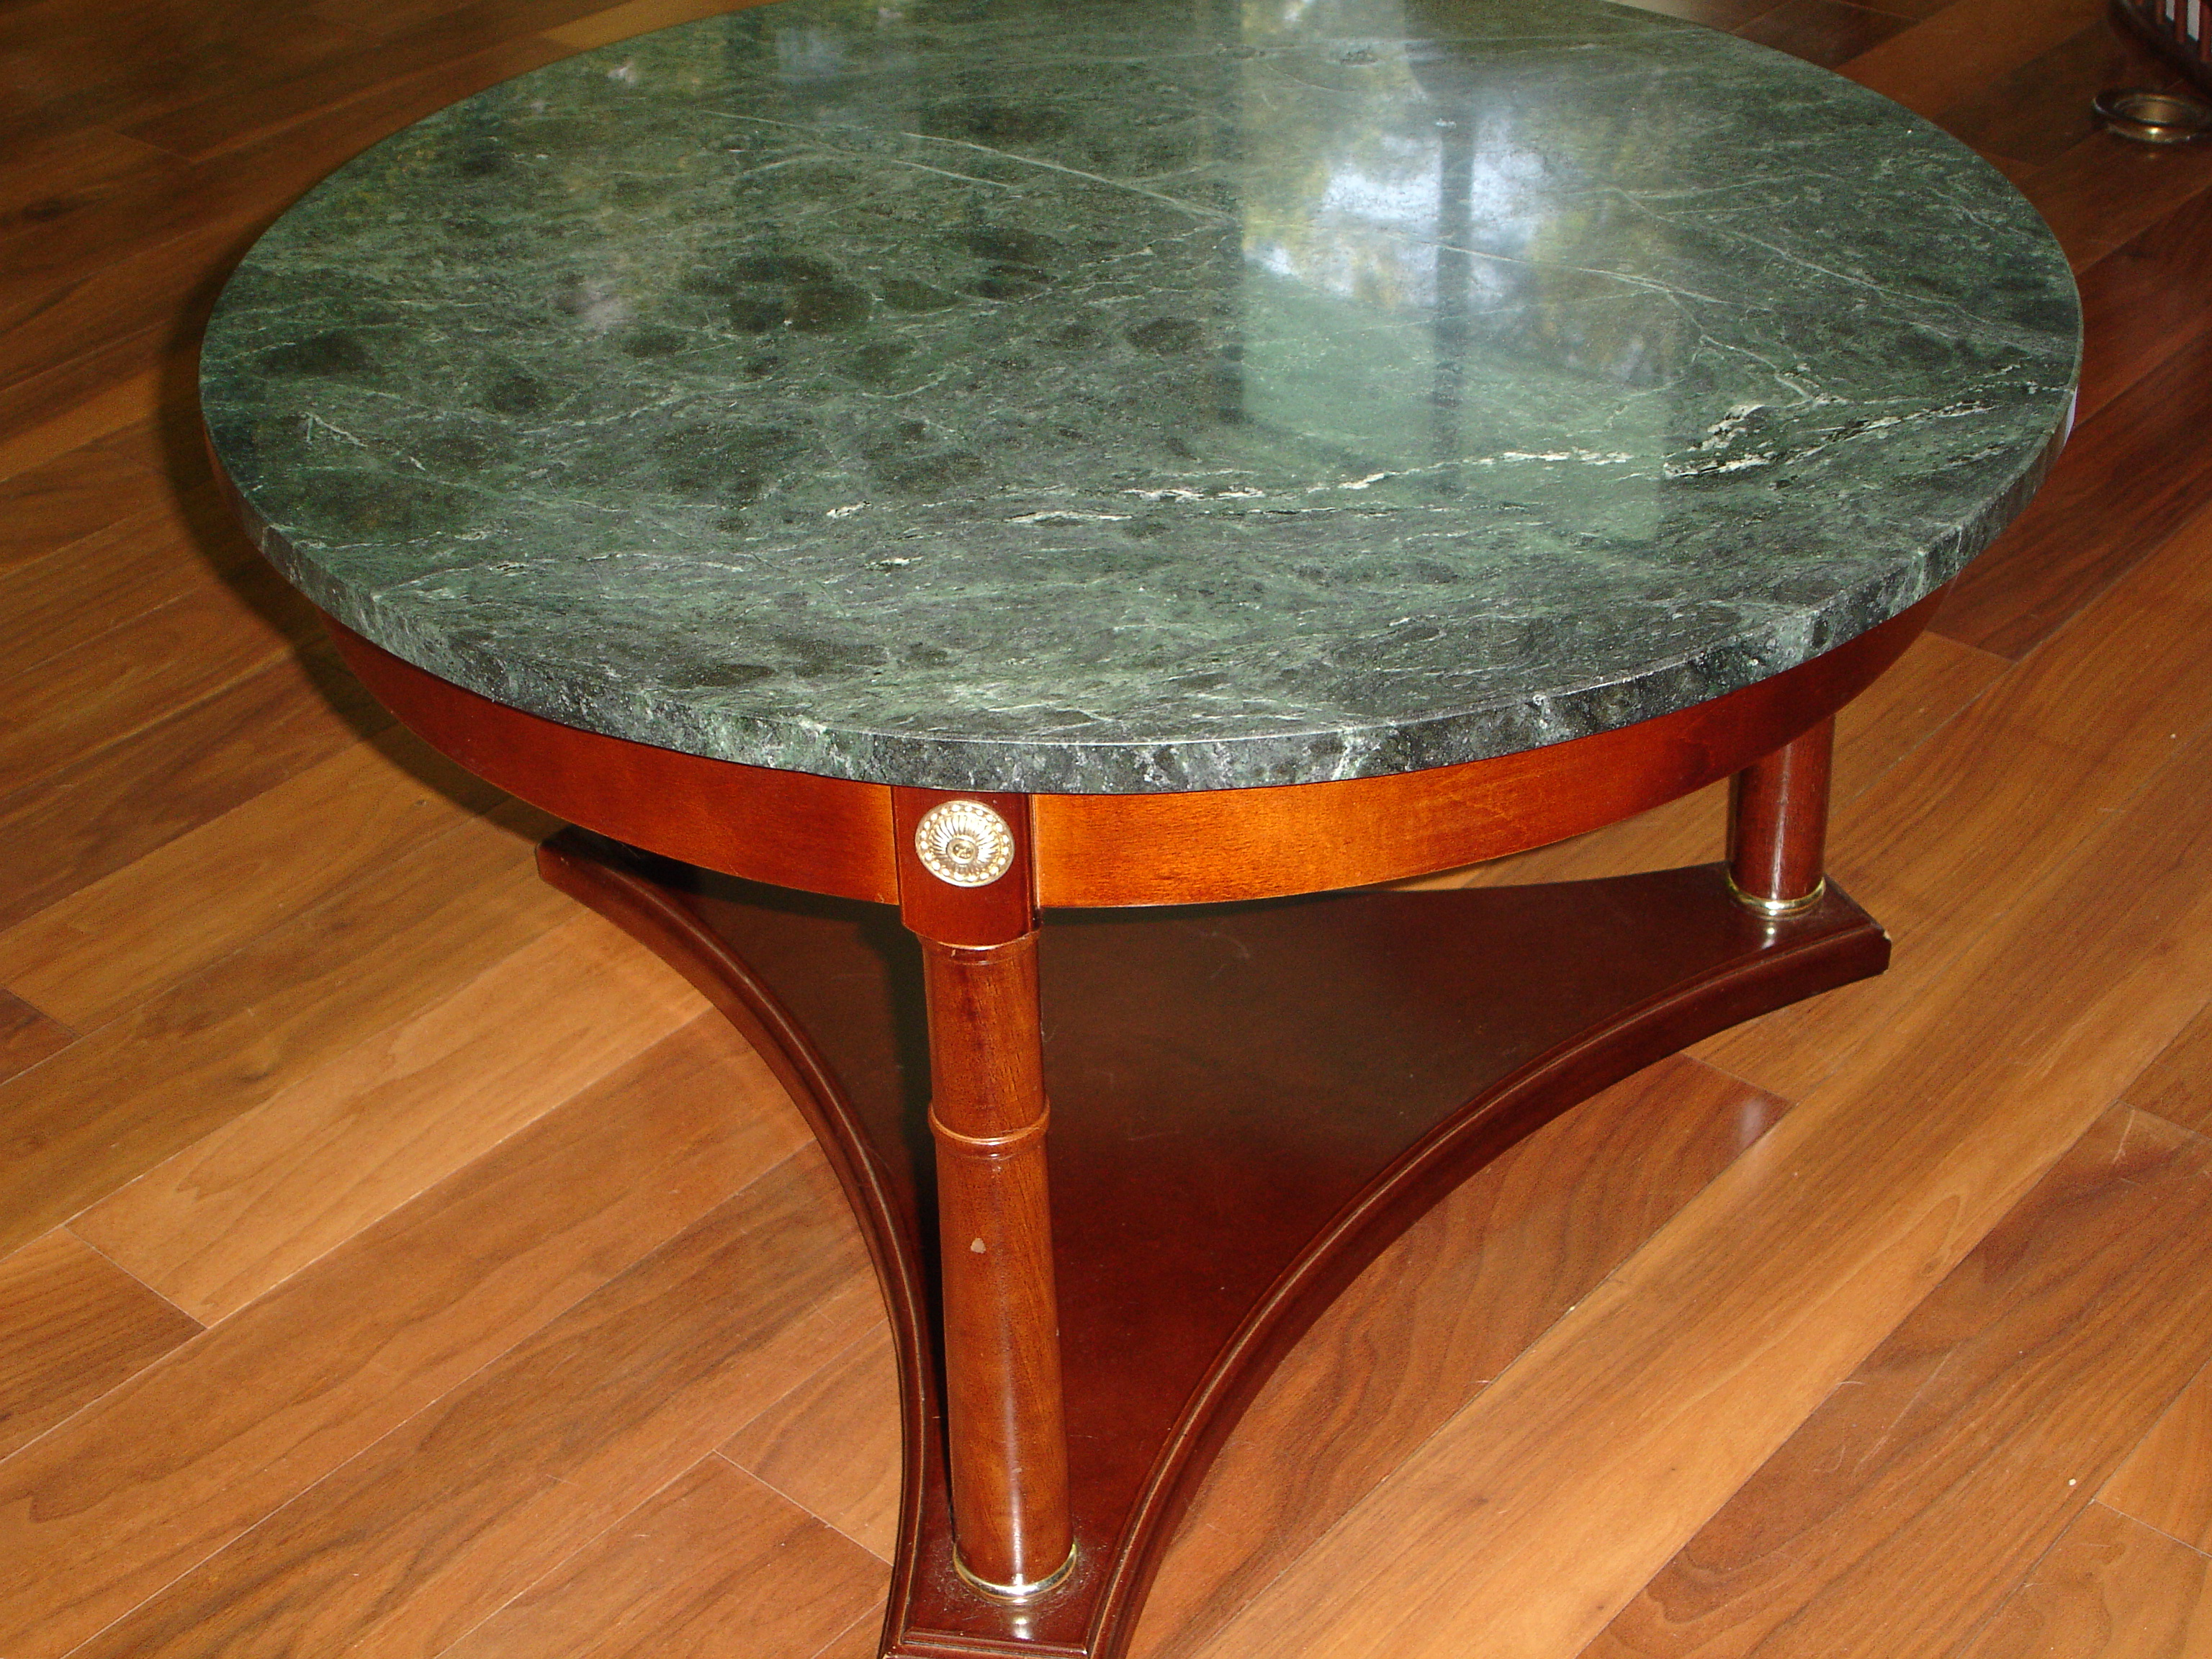 Ideal Vintage Green Marble Top & Mahogany Coffee Table | Chairish ND94